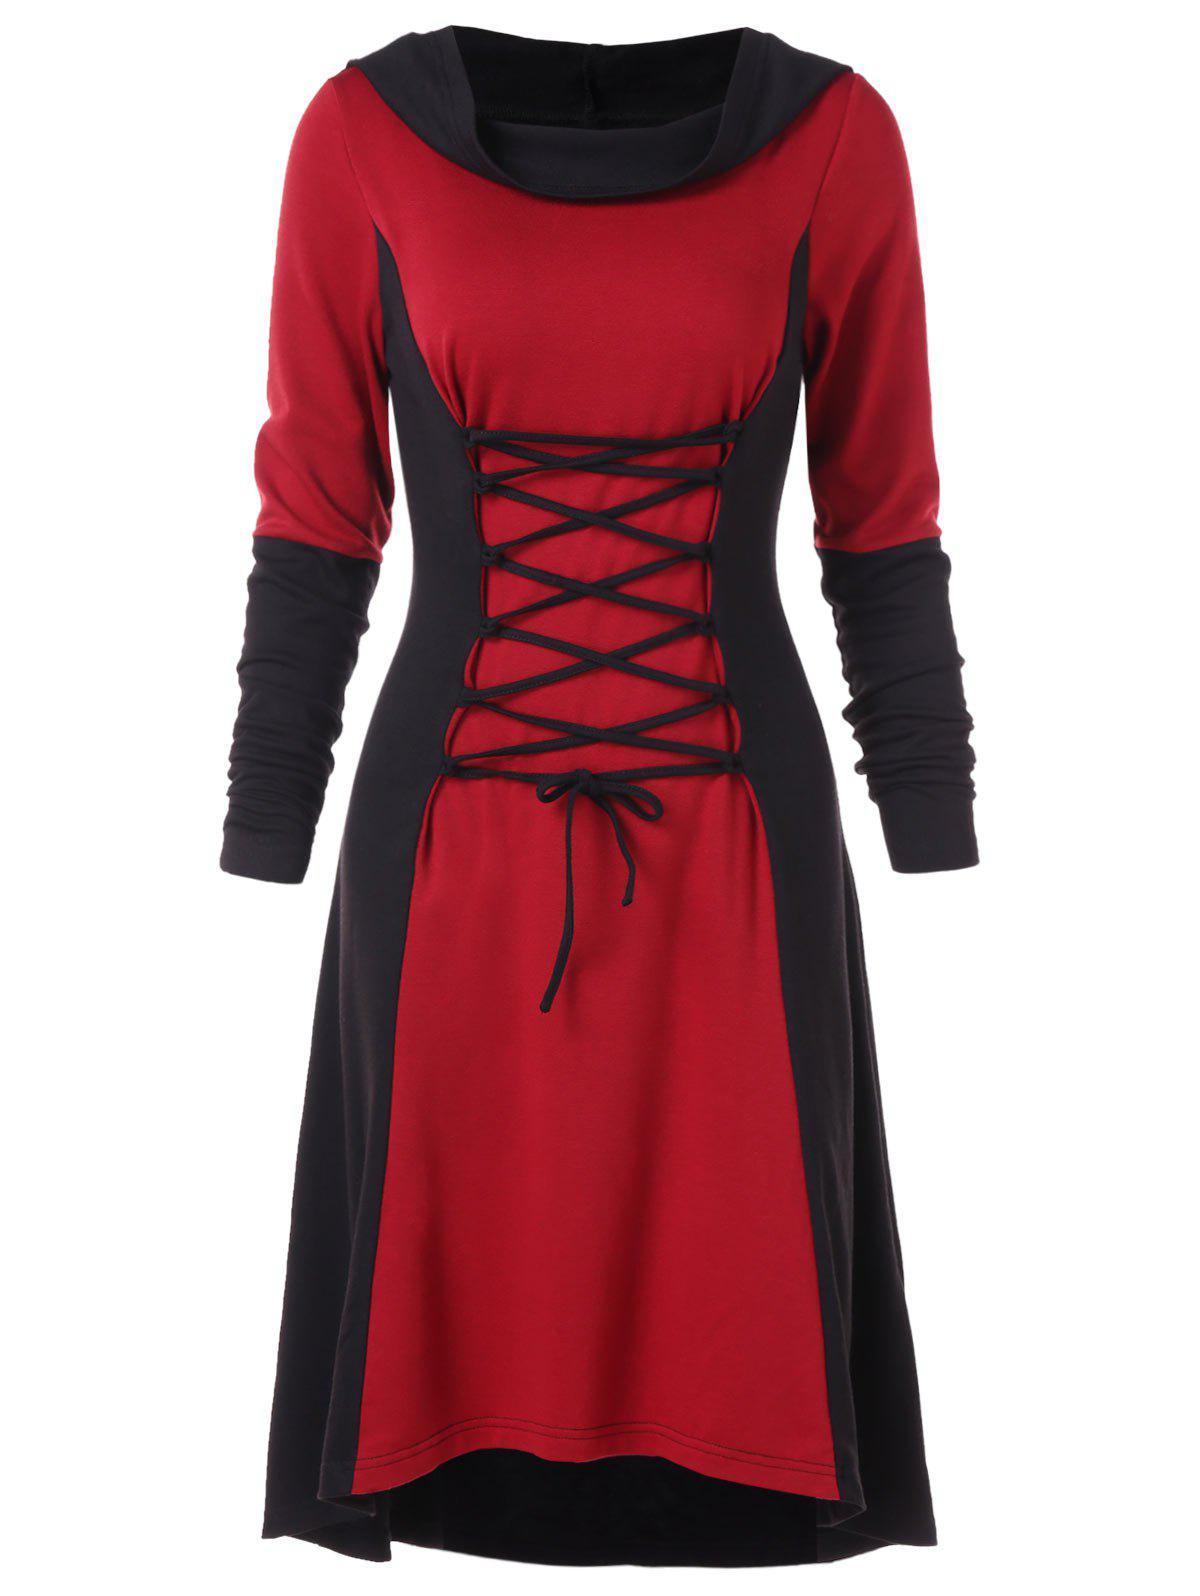 Trendy Color Block Criss Cross Gothic Hooded Dress